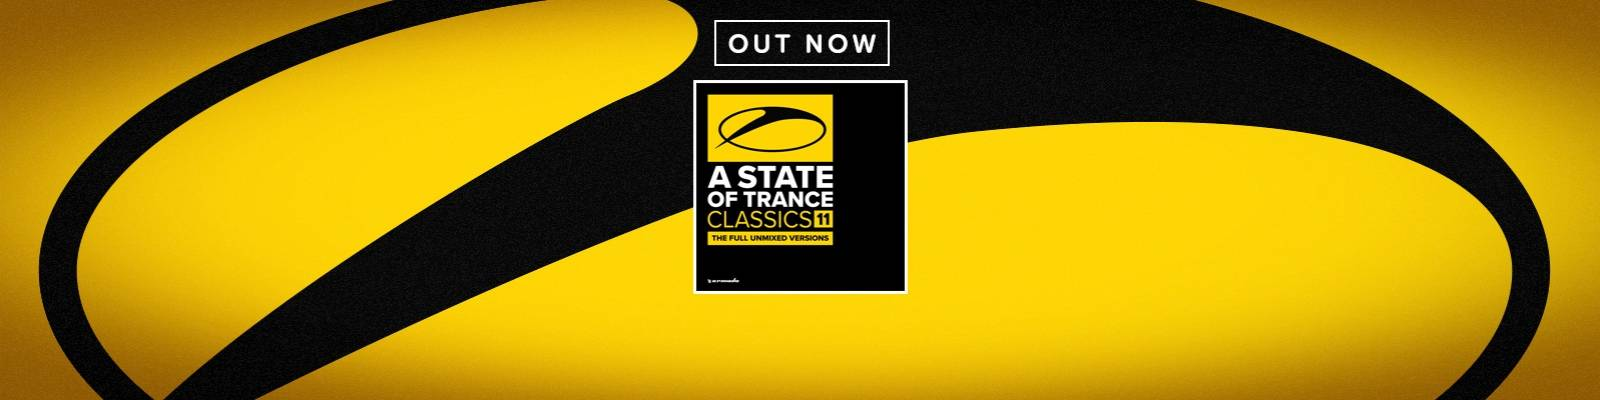 OUT NOW: A State Of Trance Classics, Vol. 11